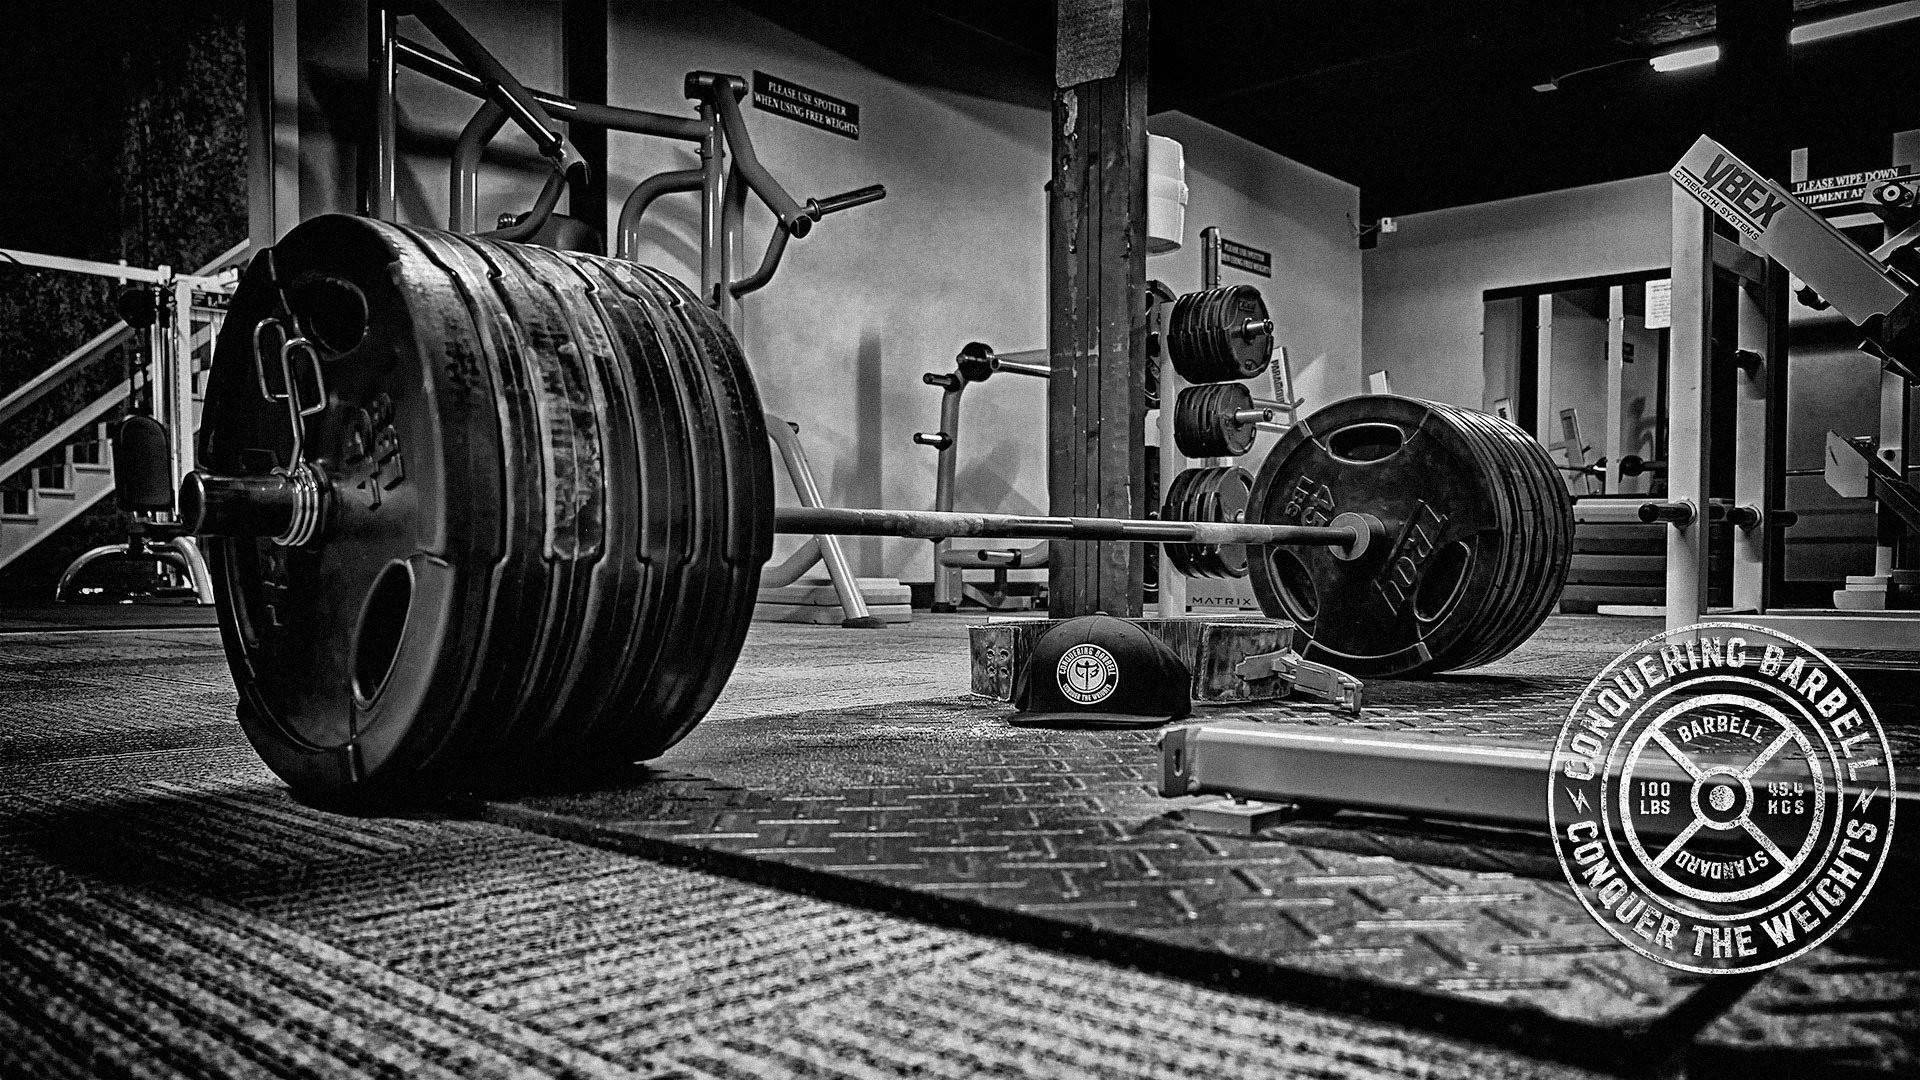 Top 49 Barbell Images | Original HD Quality Wallpapers Collection